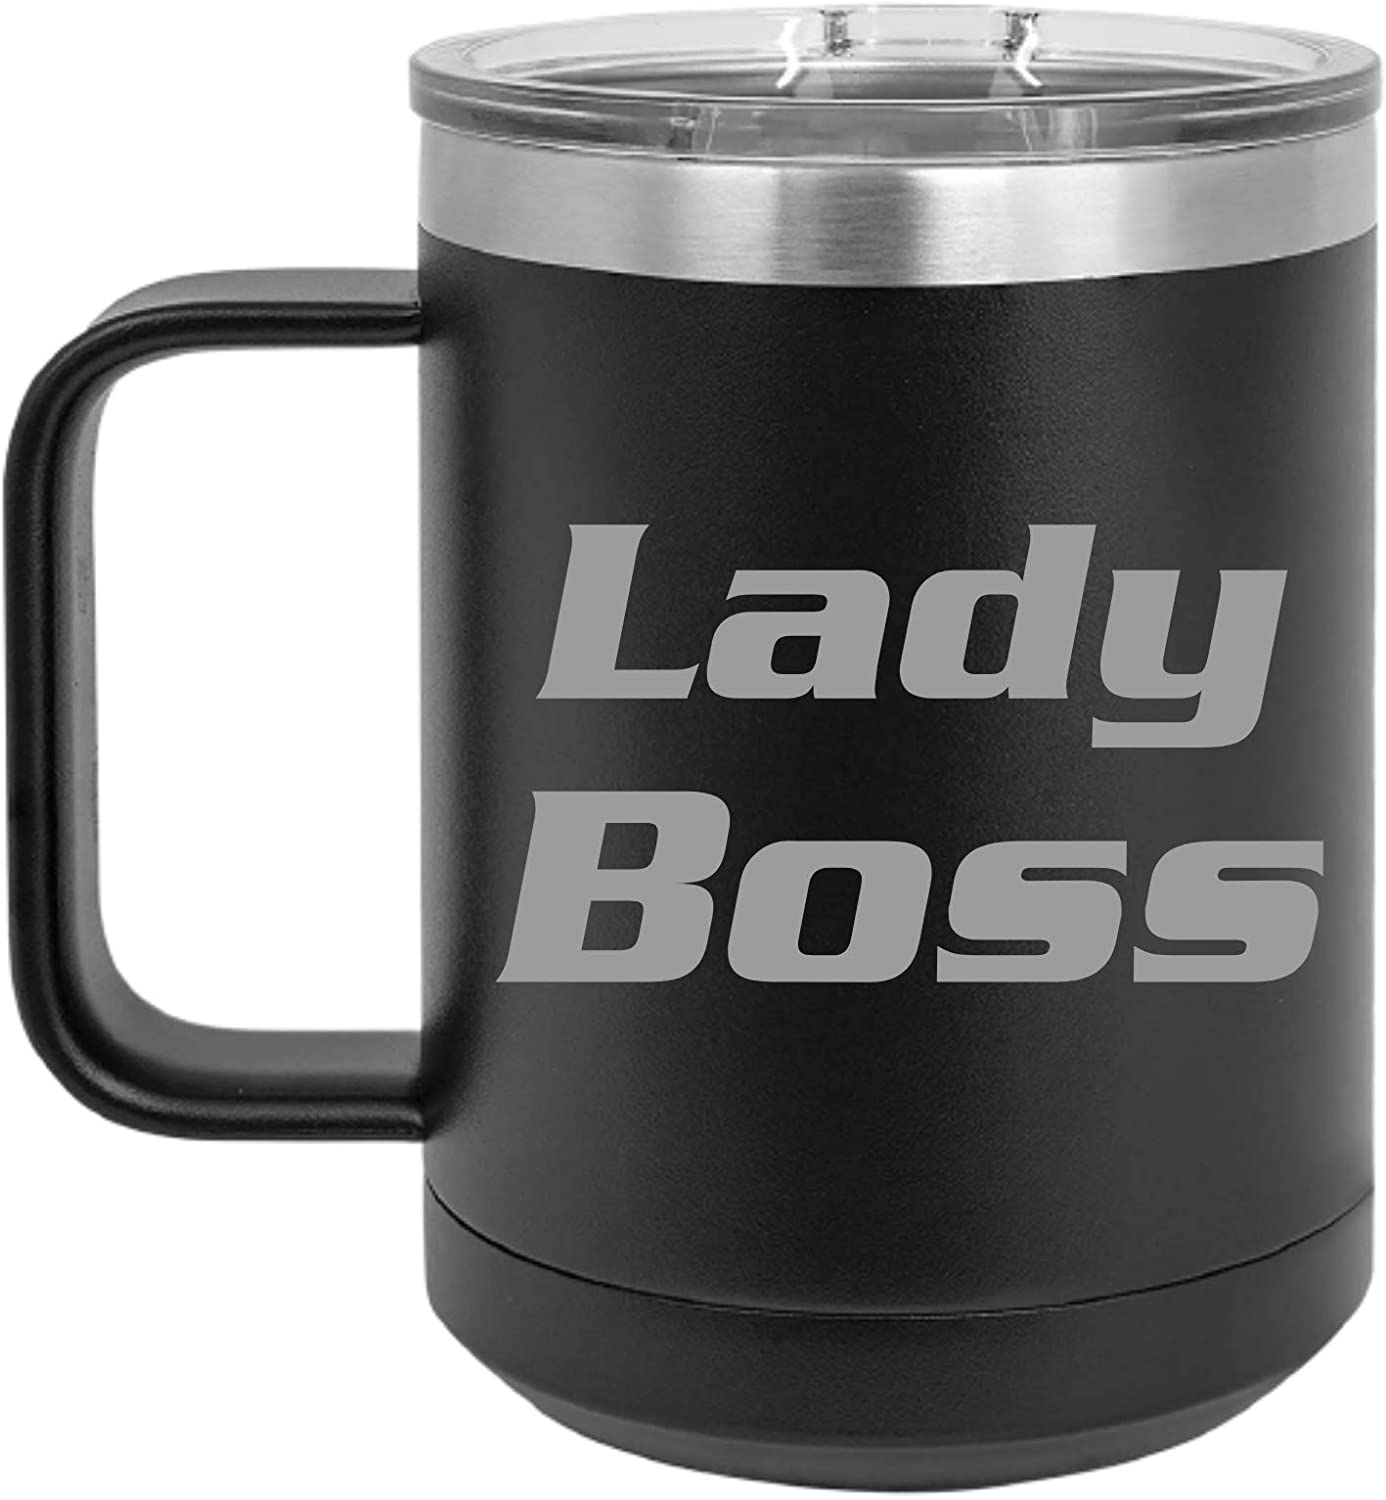 Personalized Lady Boss Custom Coffee Mugs, Unique Gift for Coworker, Best Friend or Boss Lady, 15oz Stainless Steel Laser Engraved Special Occasion Gift (15oz - Lady Boss, Black)